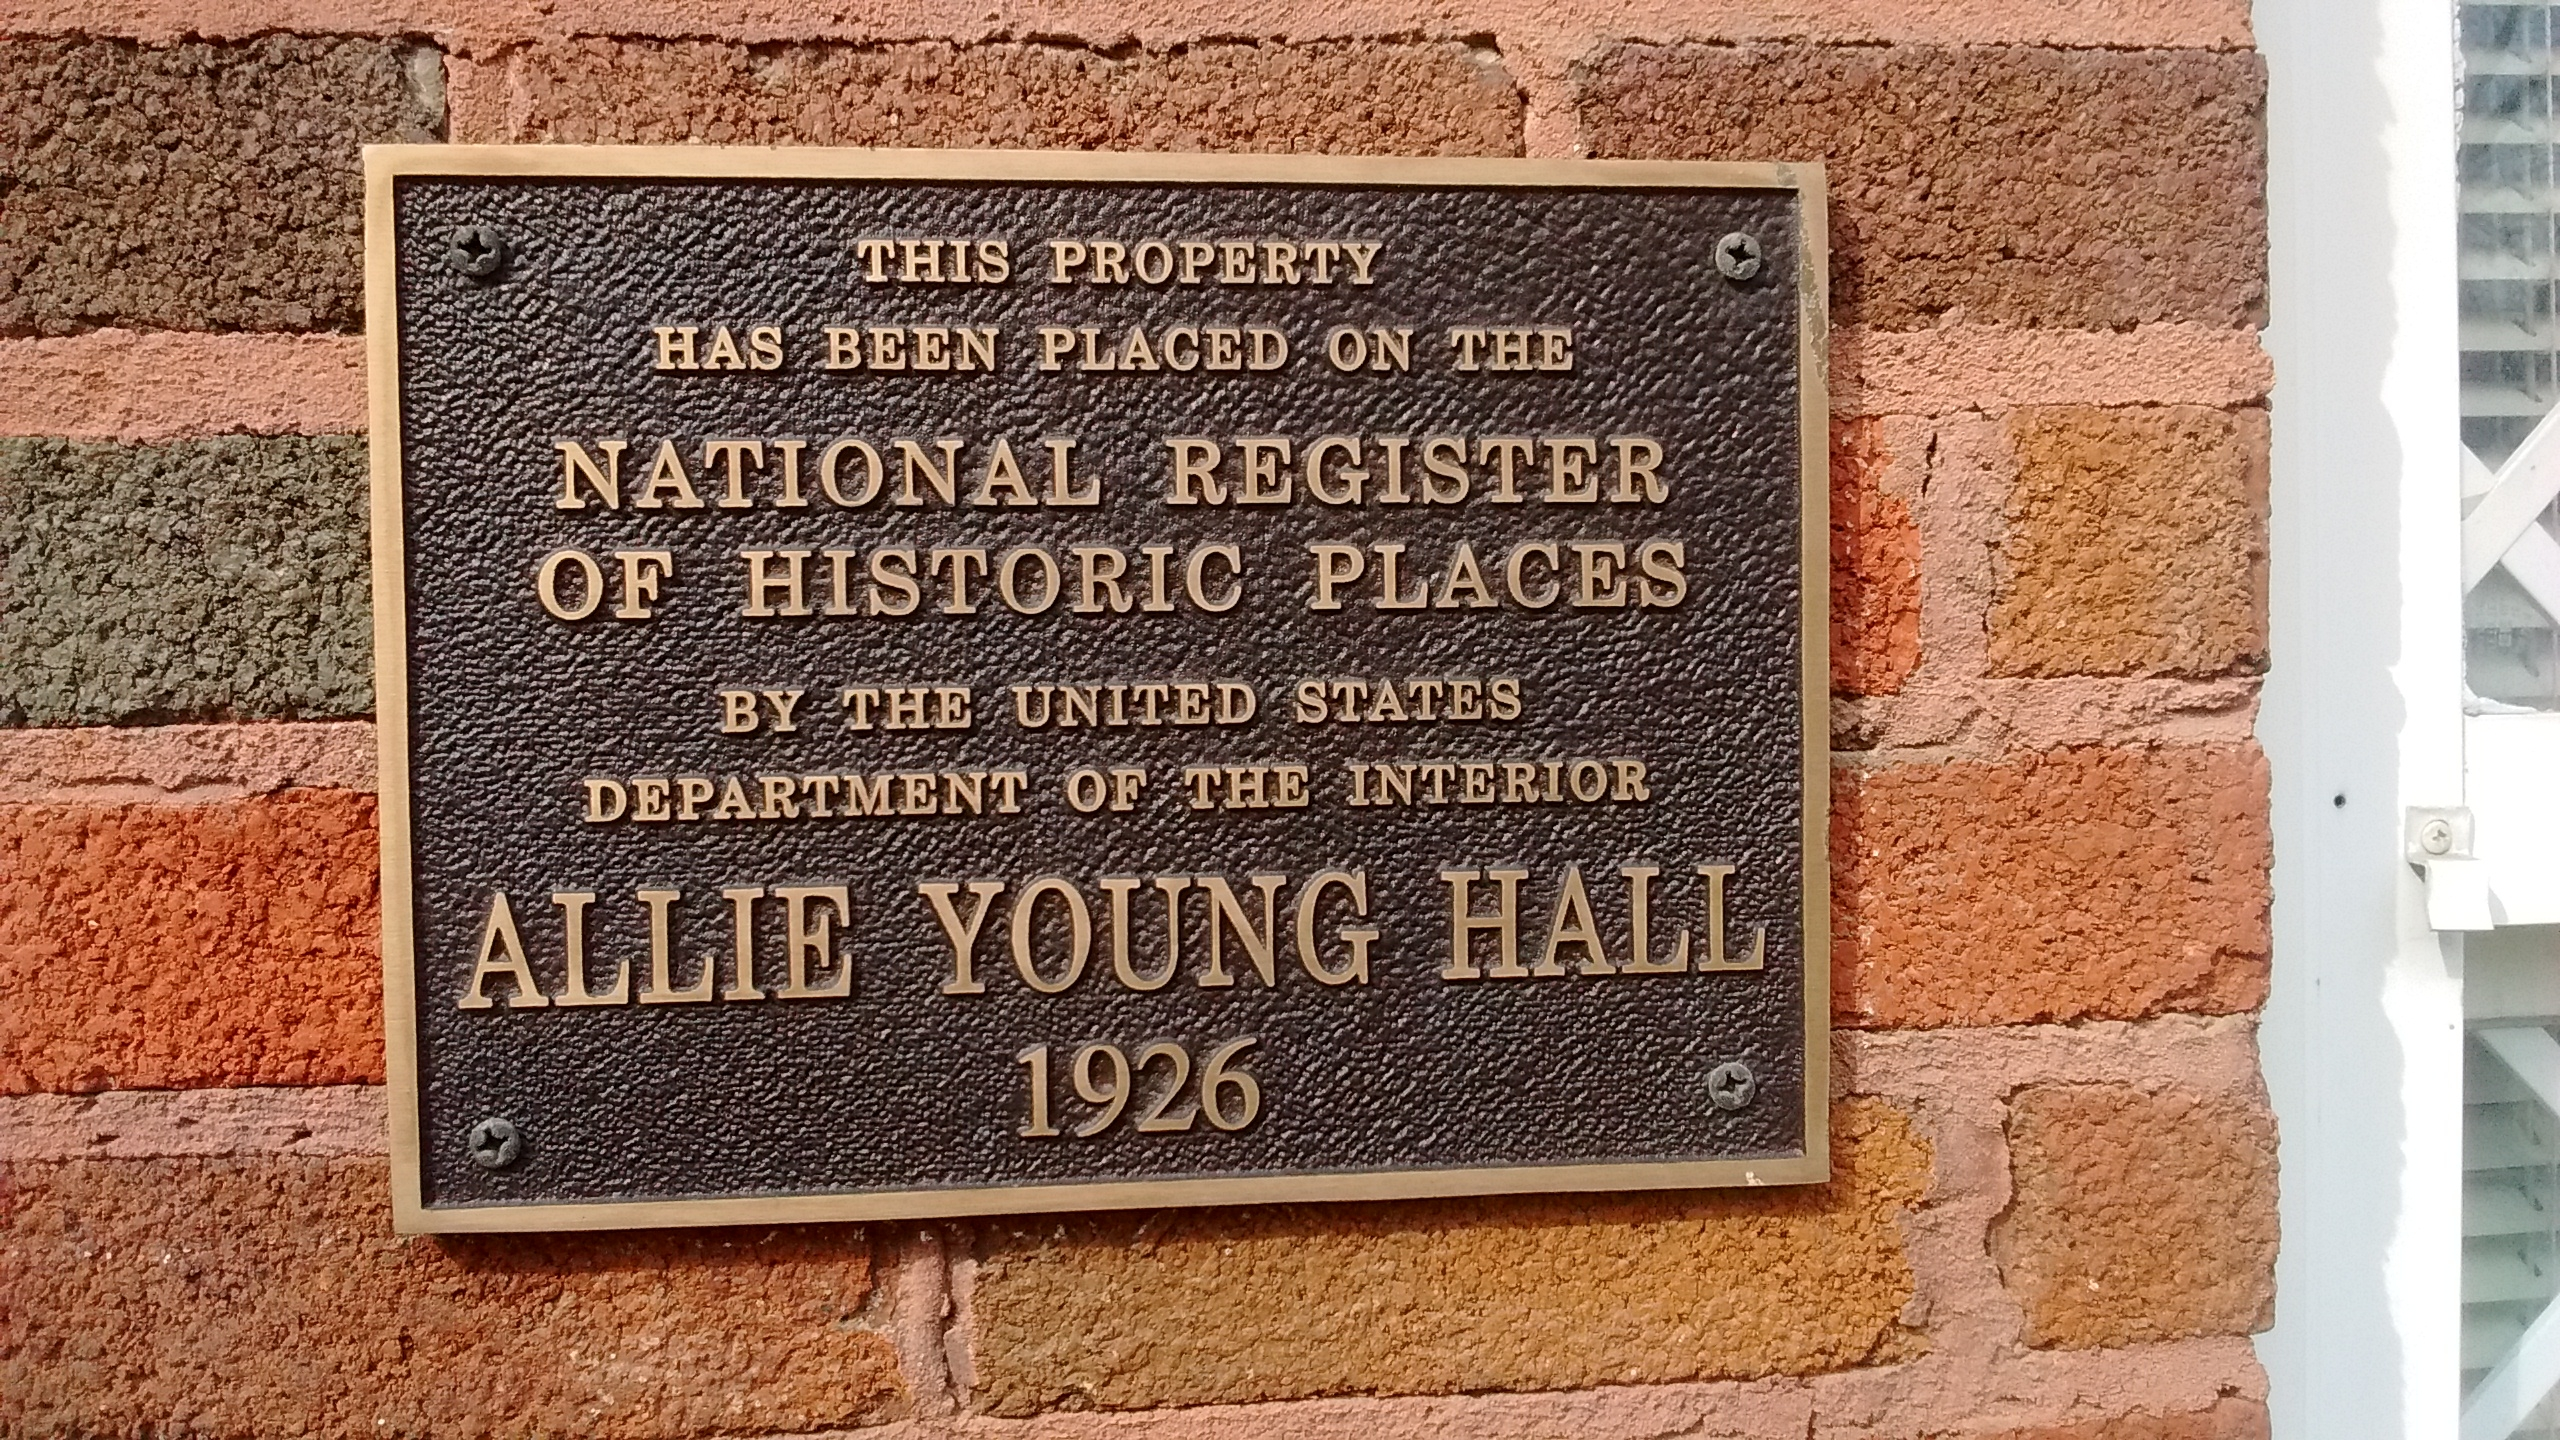 Allie Young Hall